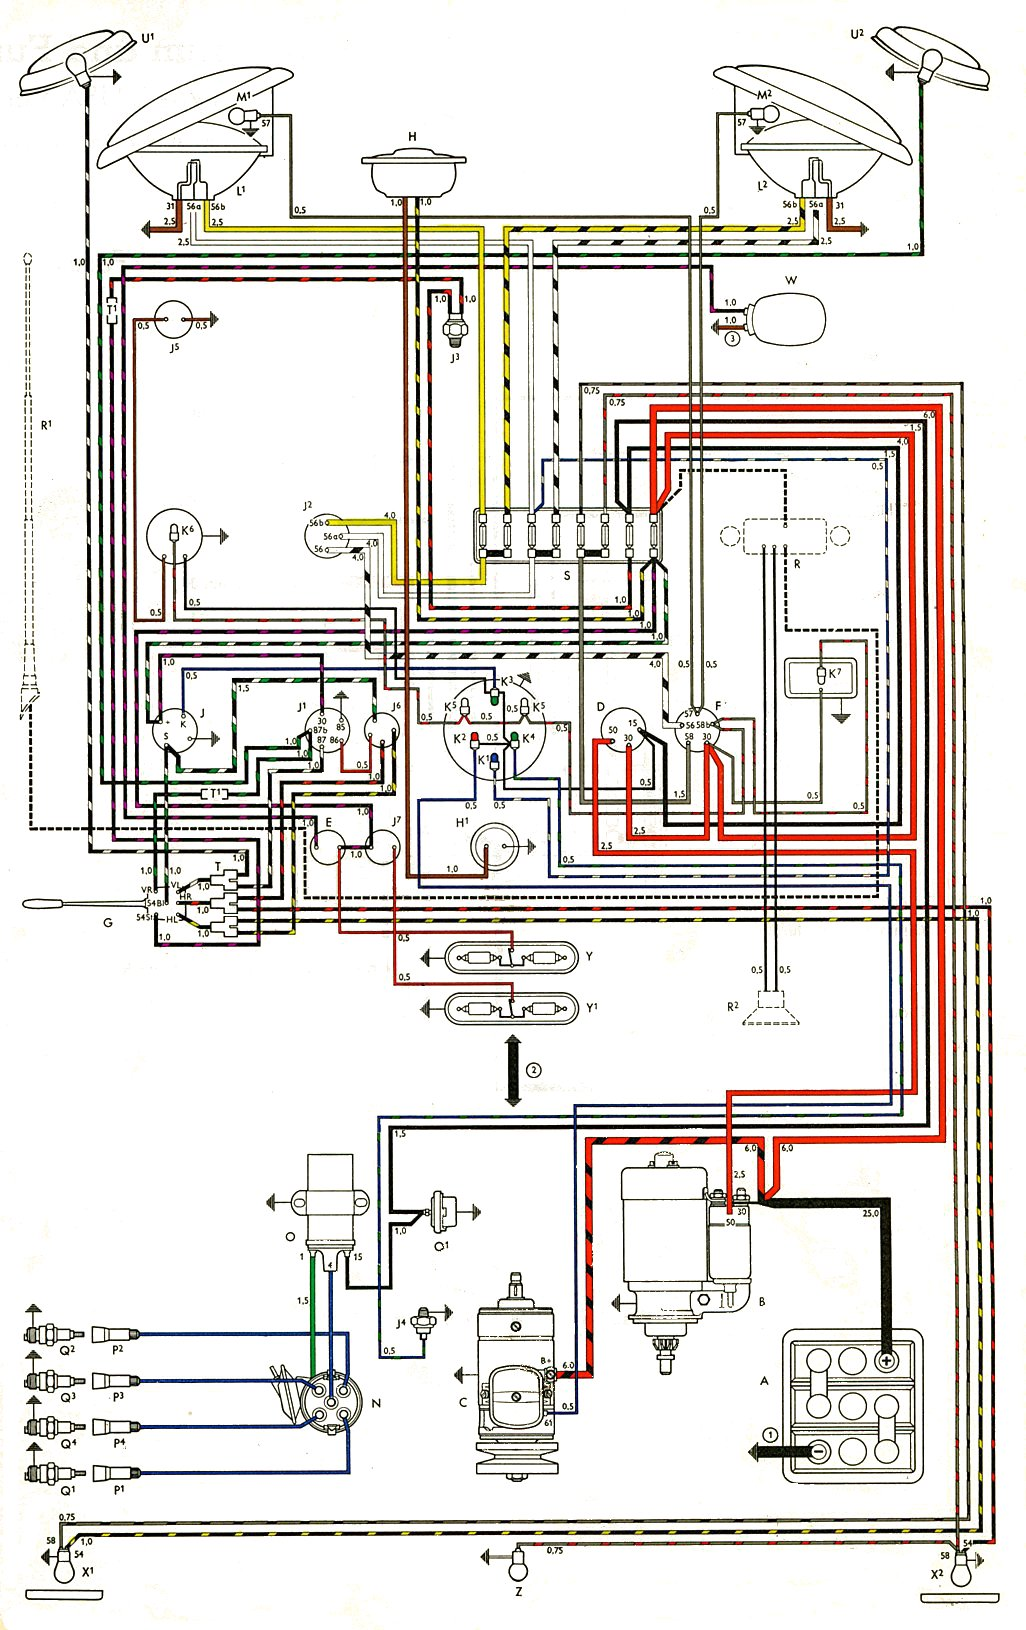 bus_63_USA thesamba com type 2 wiring diagrams vw wiring diagrams at pacquiaovsvargaslive.co